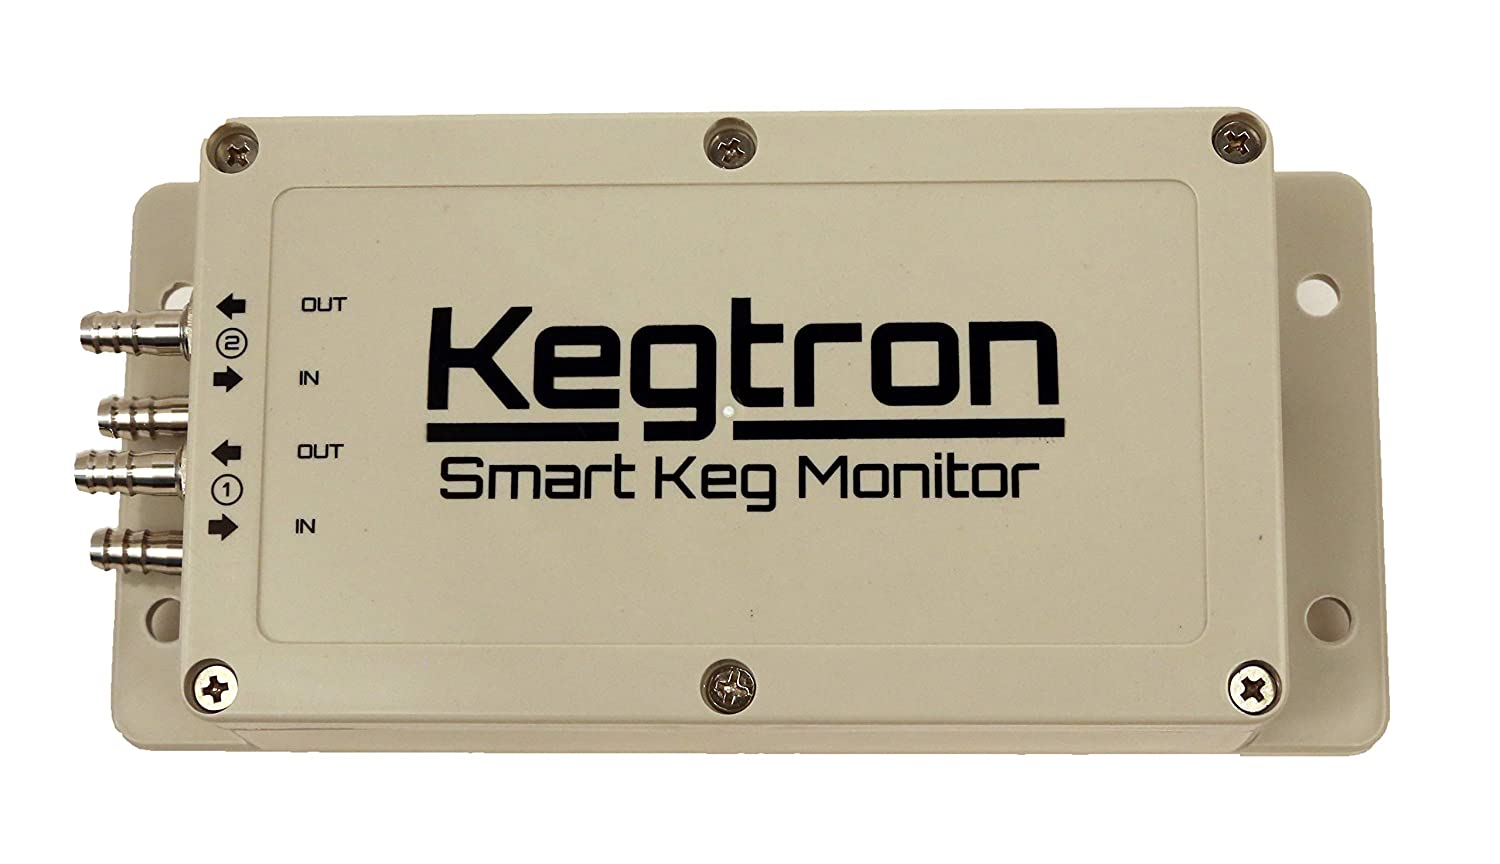 Kegtron Smart Keg Monitor - Dual Tap Expansion Unit | Track Your Keg Levels From Your Phone | Upgrade Your Taps